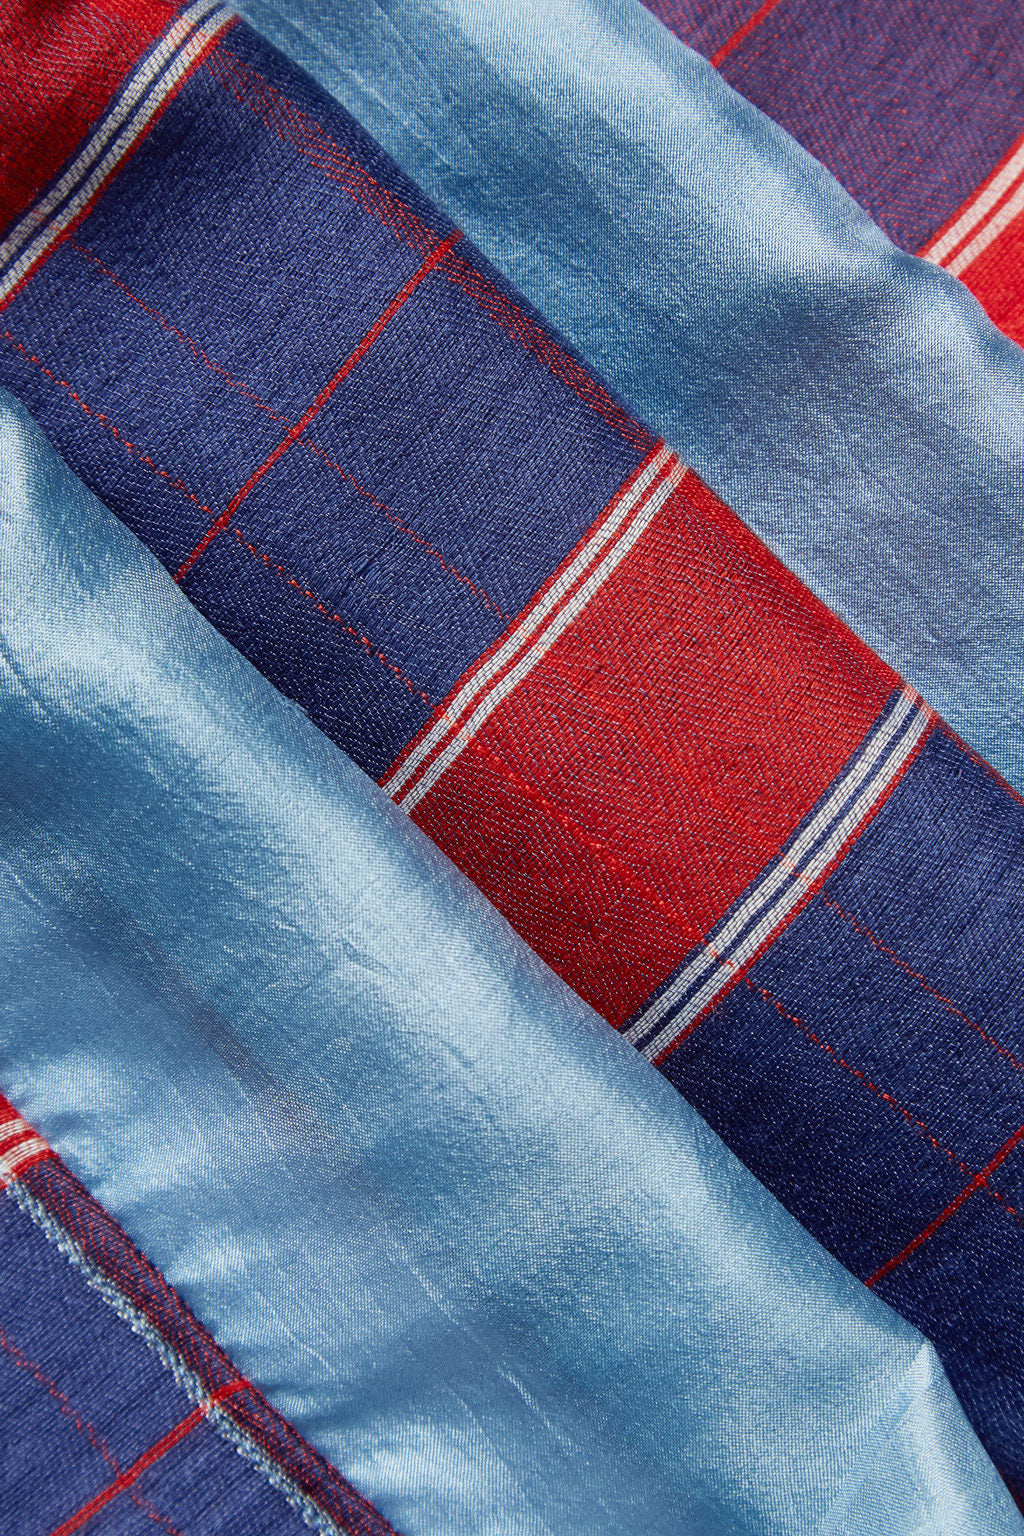 The River of Life - Long Blue Silk Woolen Scarf